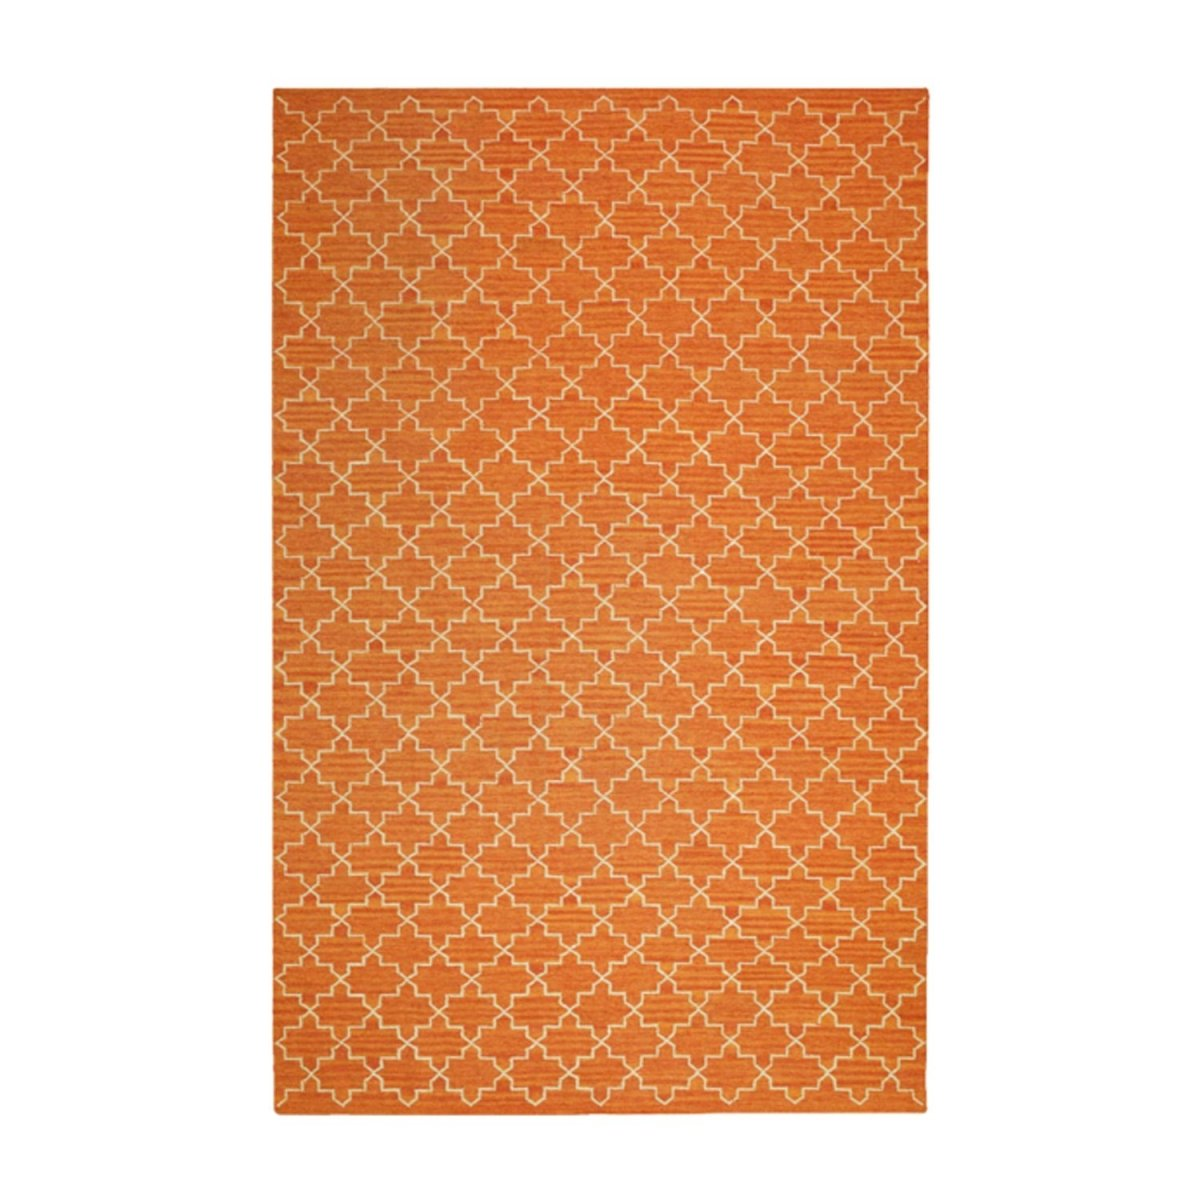 Matta New Geometric från Chhatwal & Jonsson, Orange Melange / Off White - Posh Living